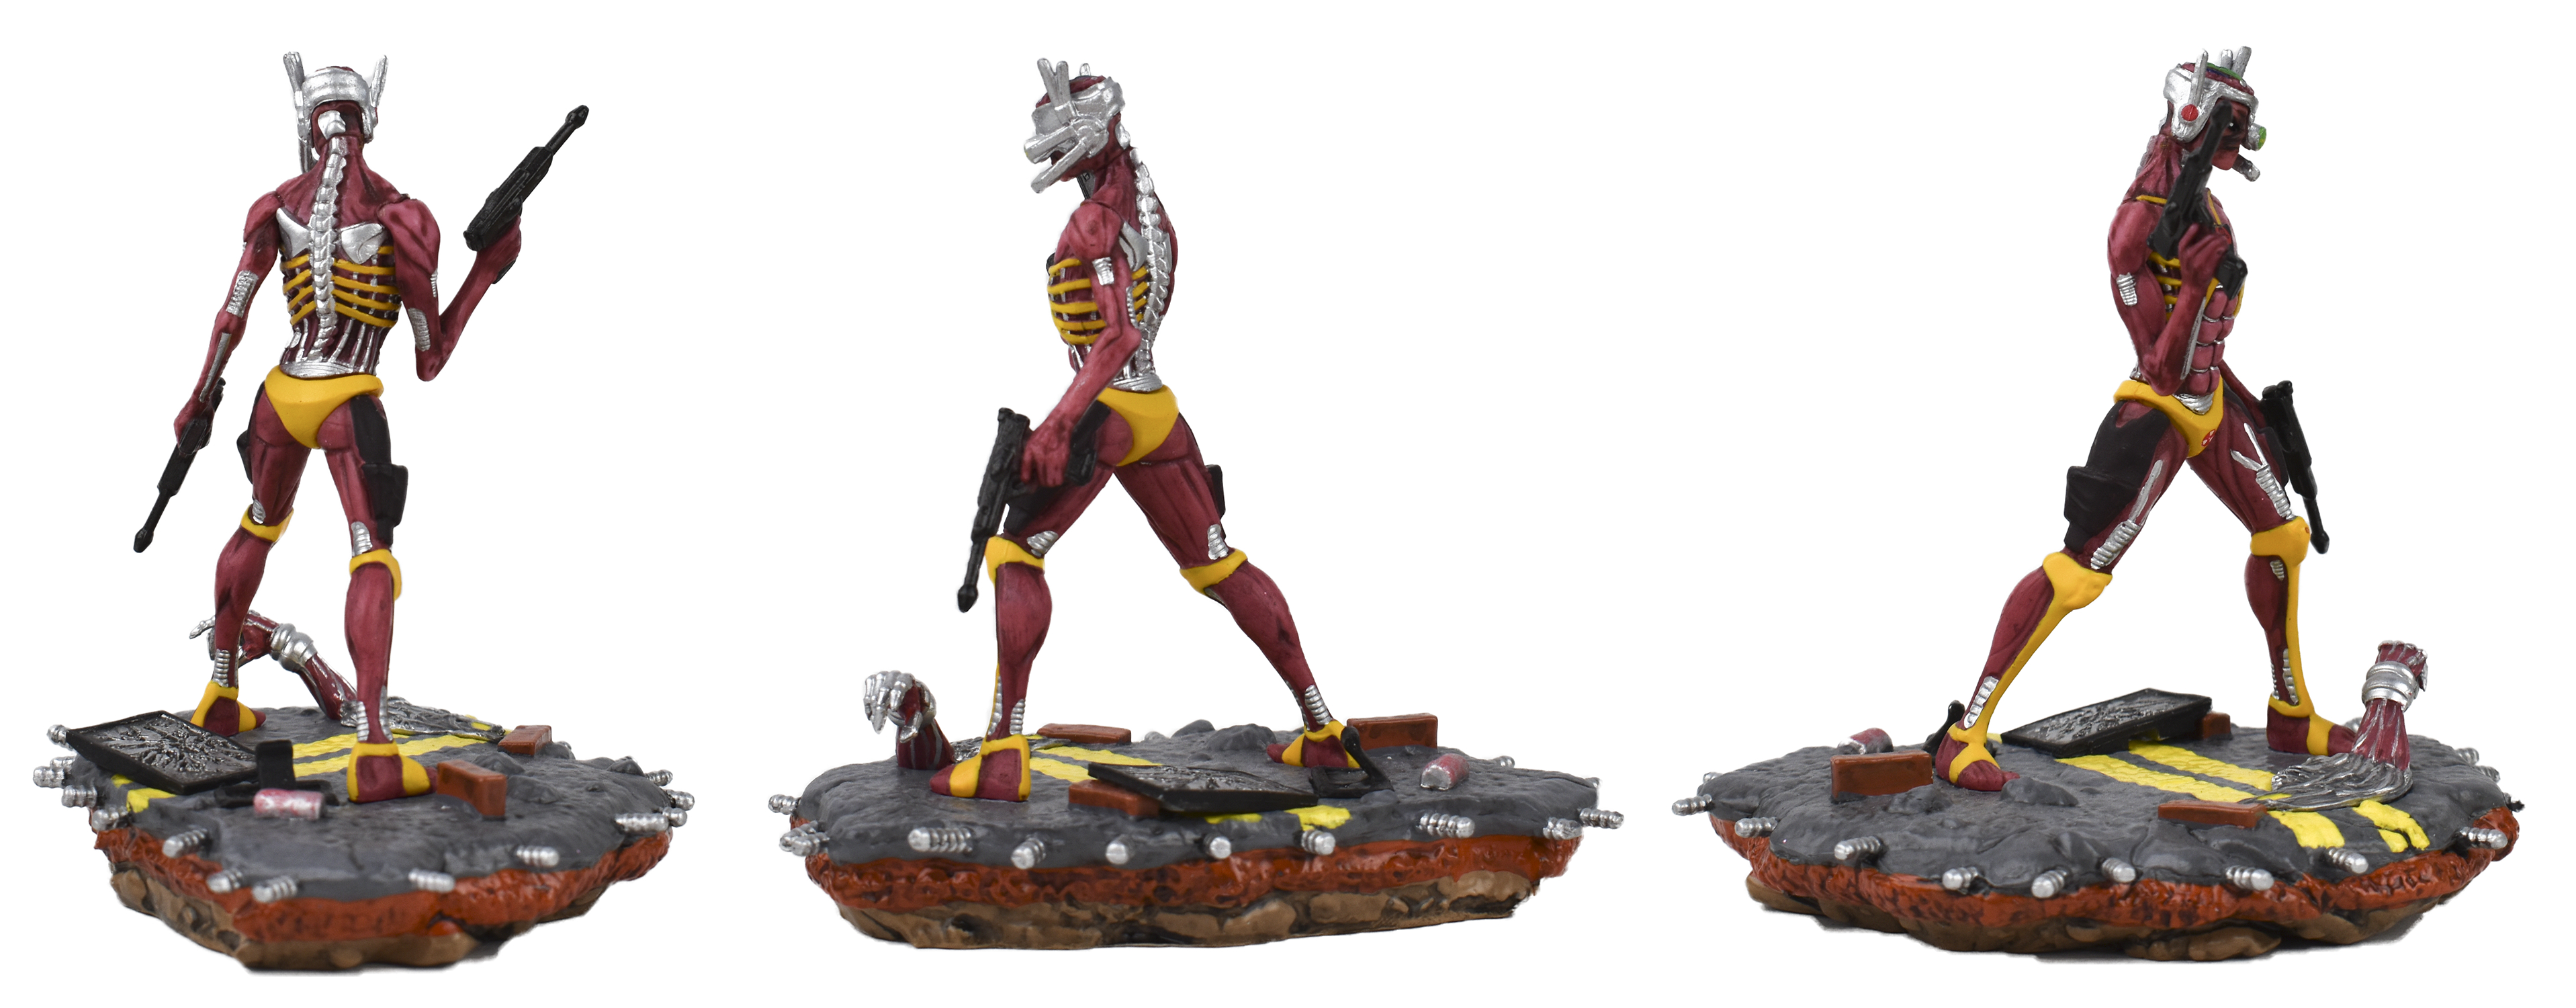 LEGACY OF BEAST IRON MAIDEN SOMEWHERE IN TIME PVC STATUE